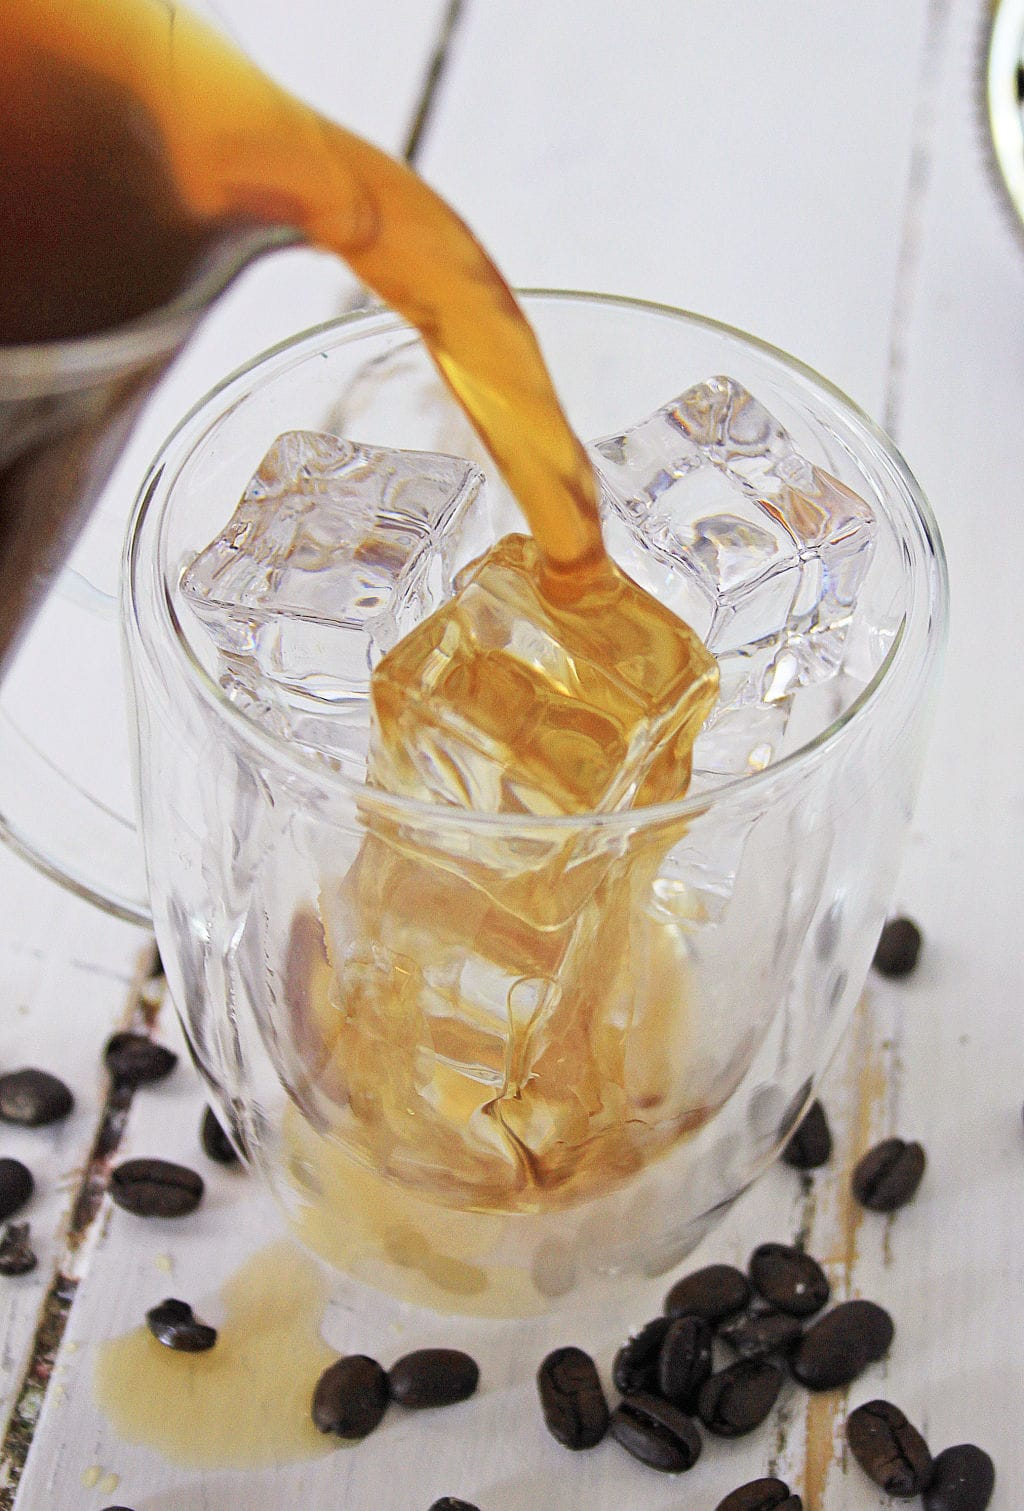 pouring coffee over ice in clear glass mug on top of white wood table with coffee bans scattered on it